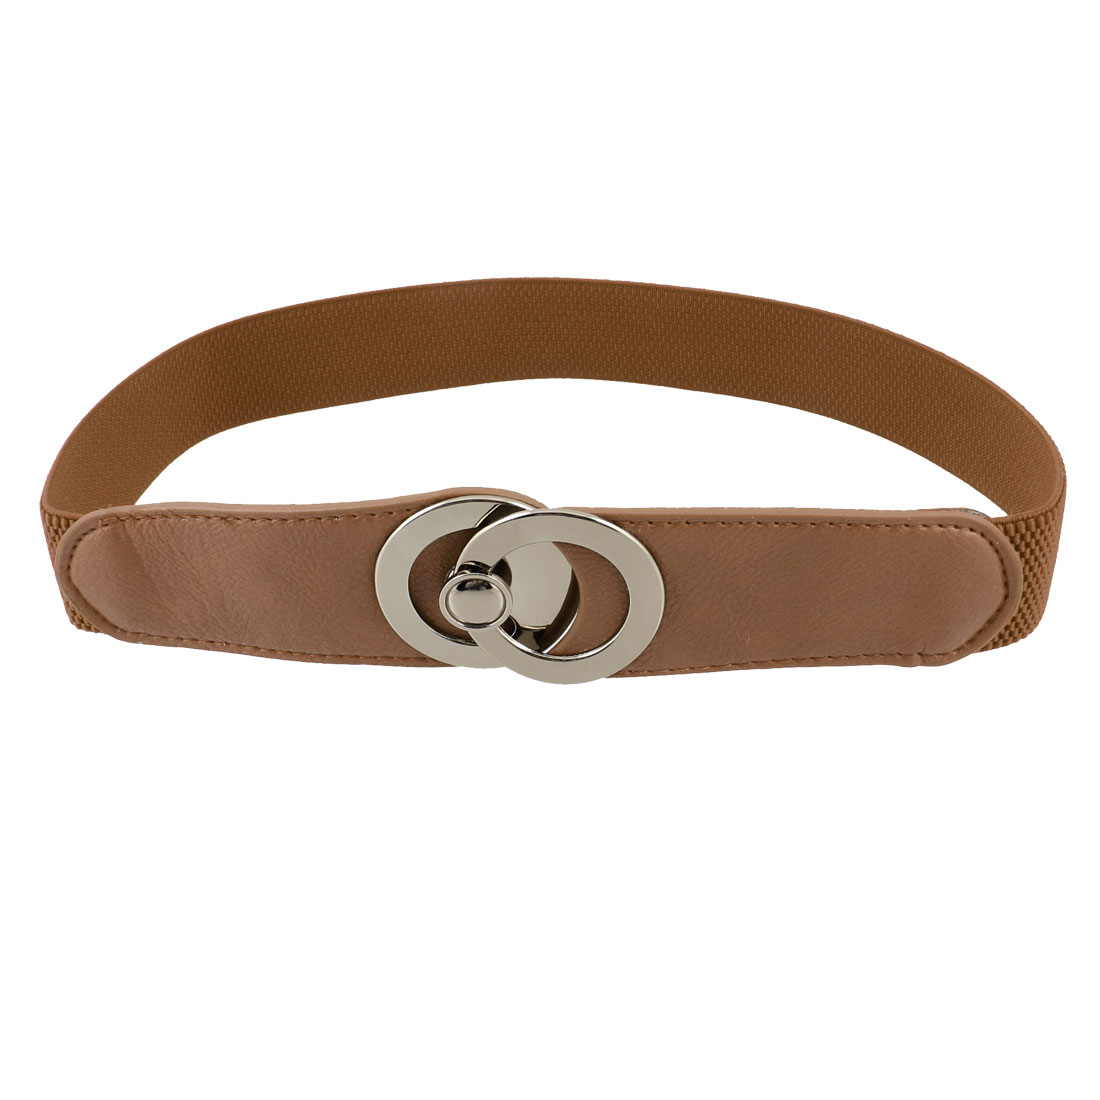 Lady Gold Tone Circles Design Interlock Buckle High Stretchy Waist Belt Brown